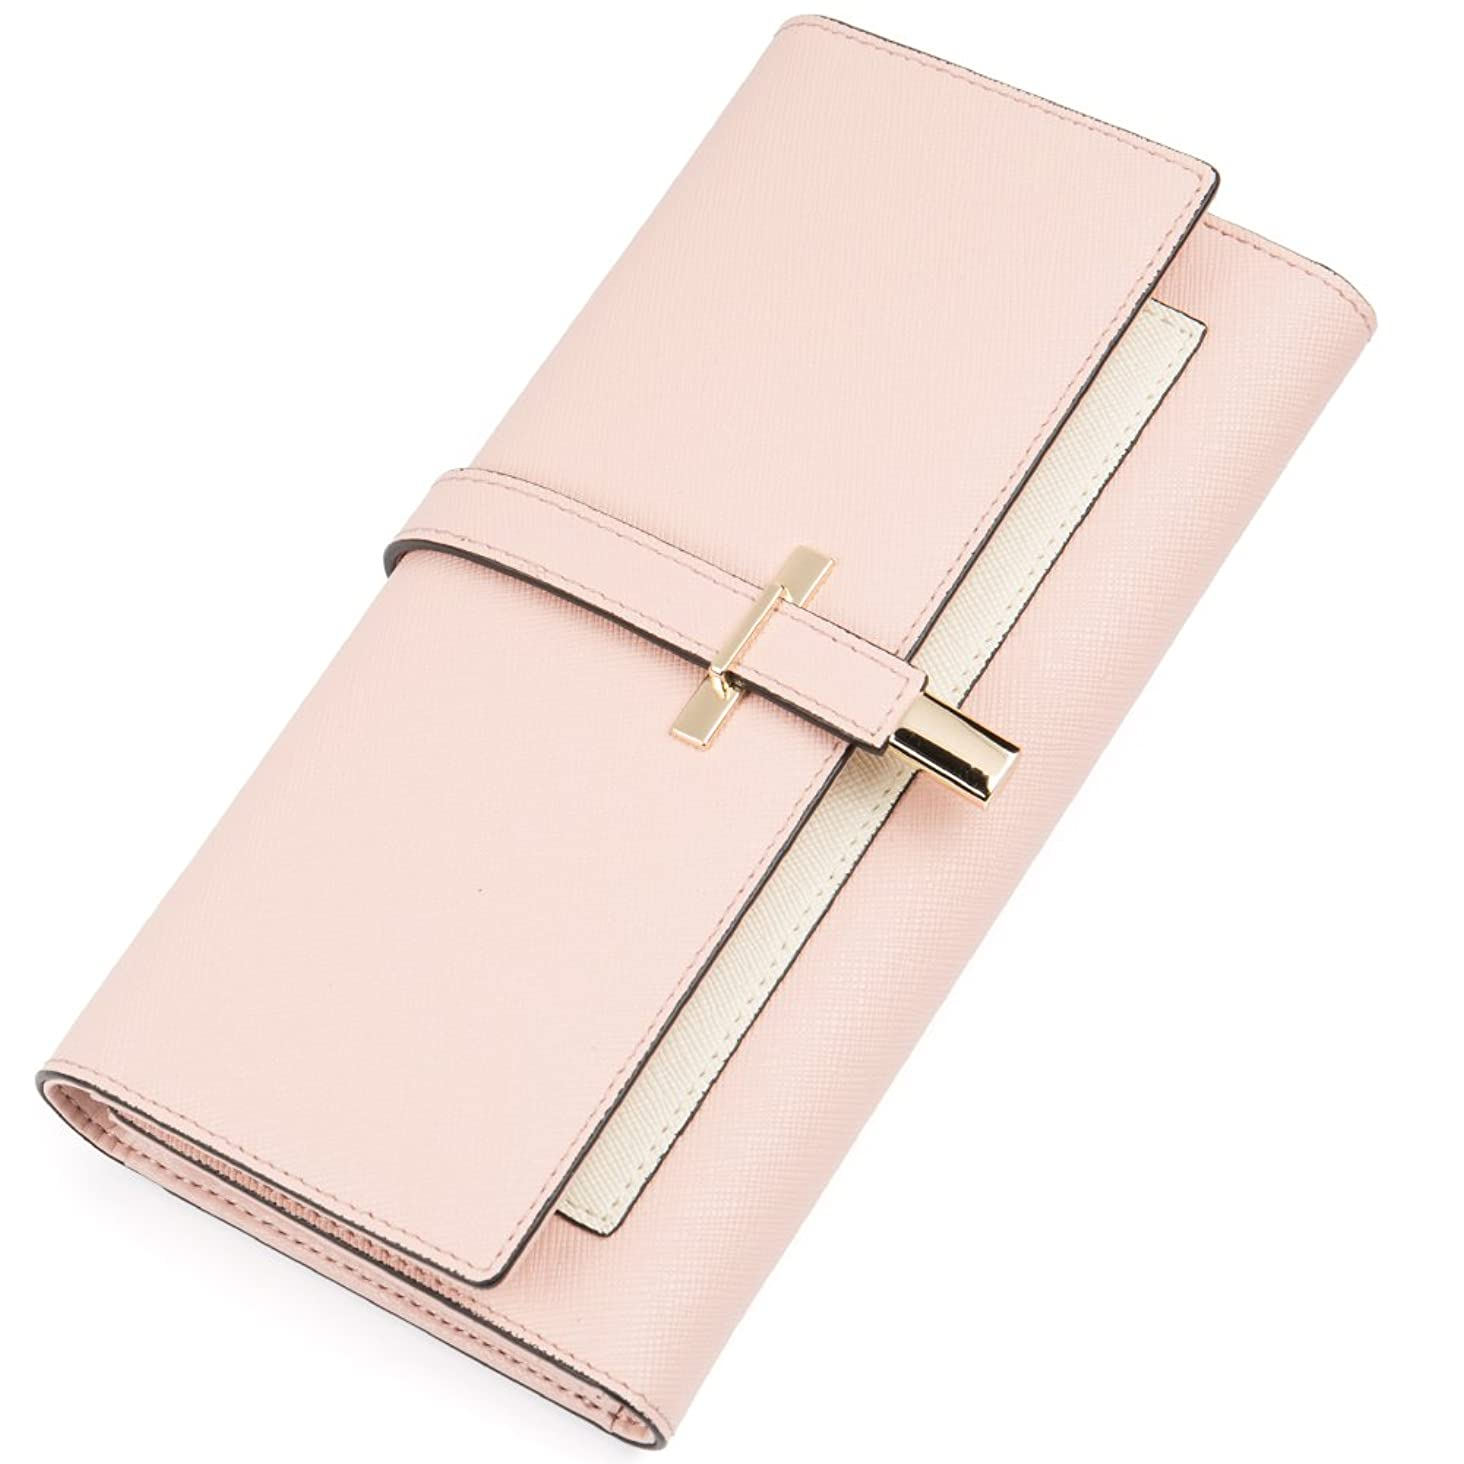 Wallet for Women Leather Slim Clutch Long Designer Trifold Ladies Credit Card Holder Organizer